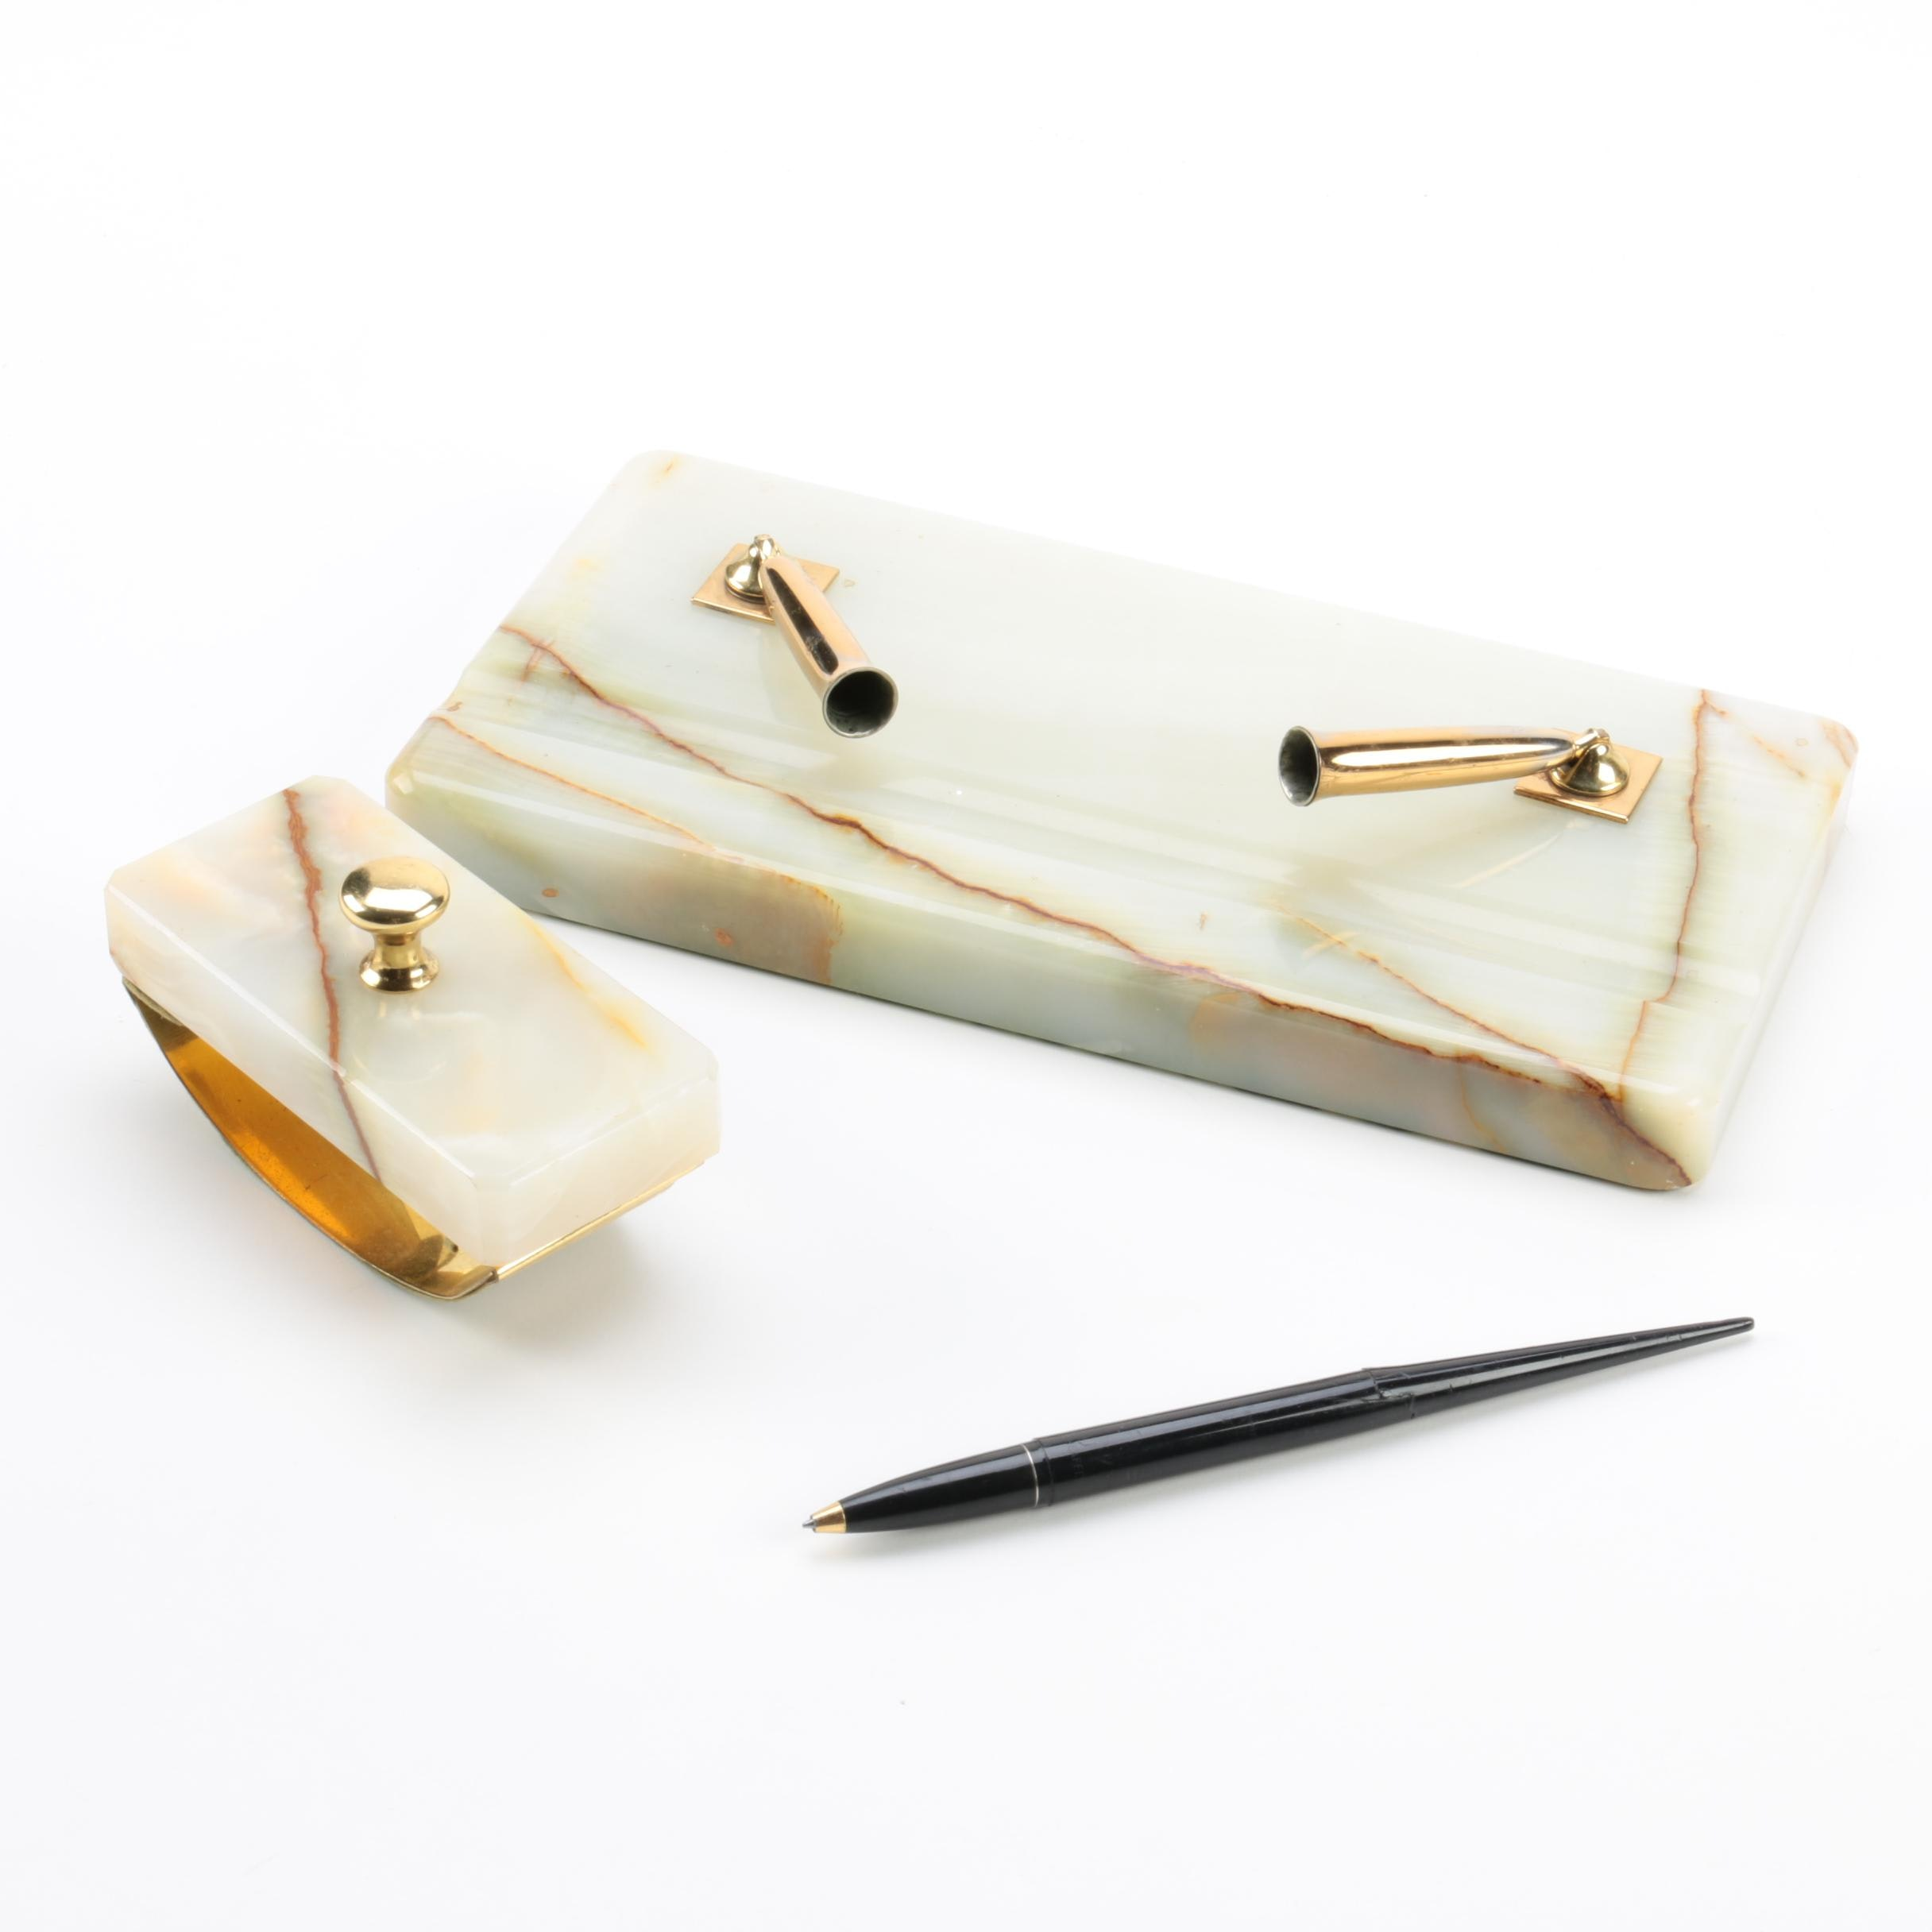 Calcite Pen Holder and Accessories